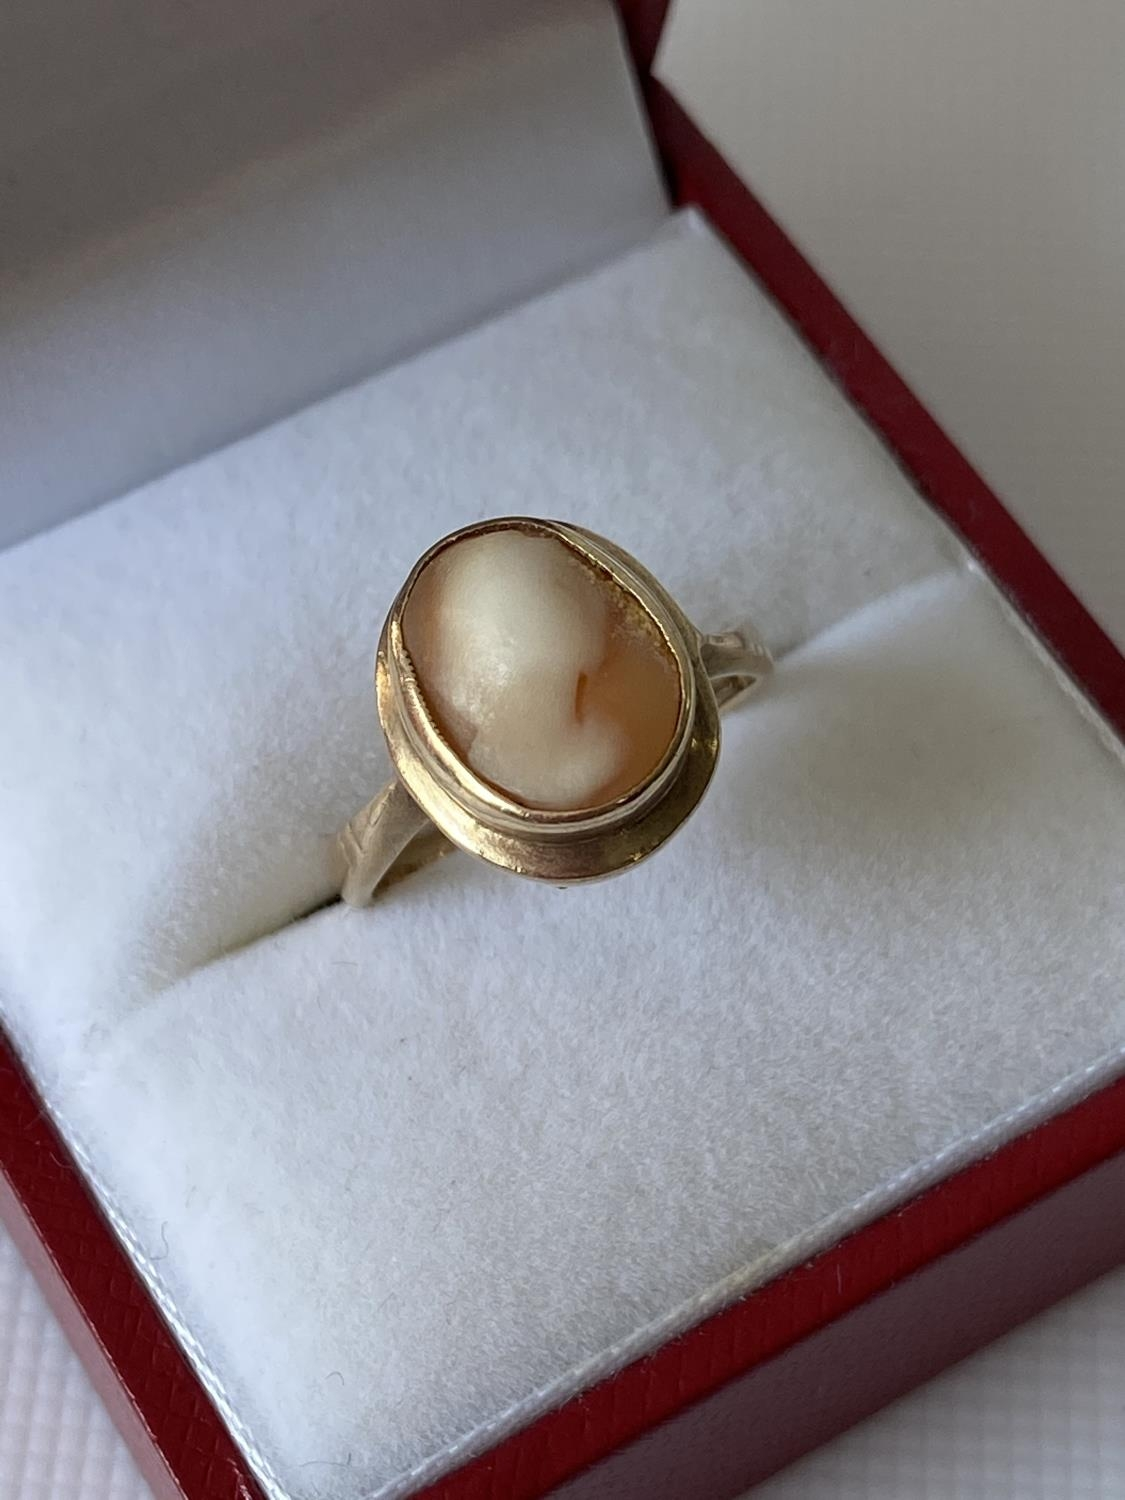 An antique 9ct gold & cameo carved ring [size I] [2.27g] - Image 4 of 6